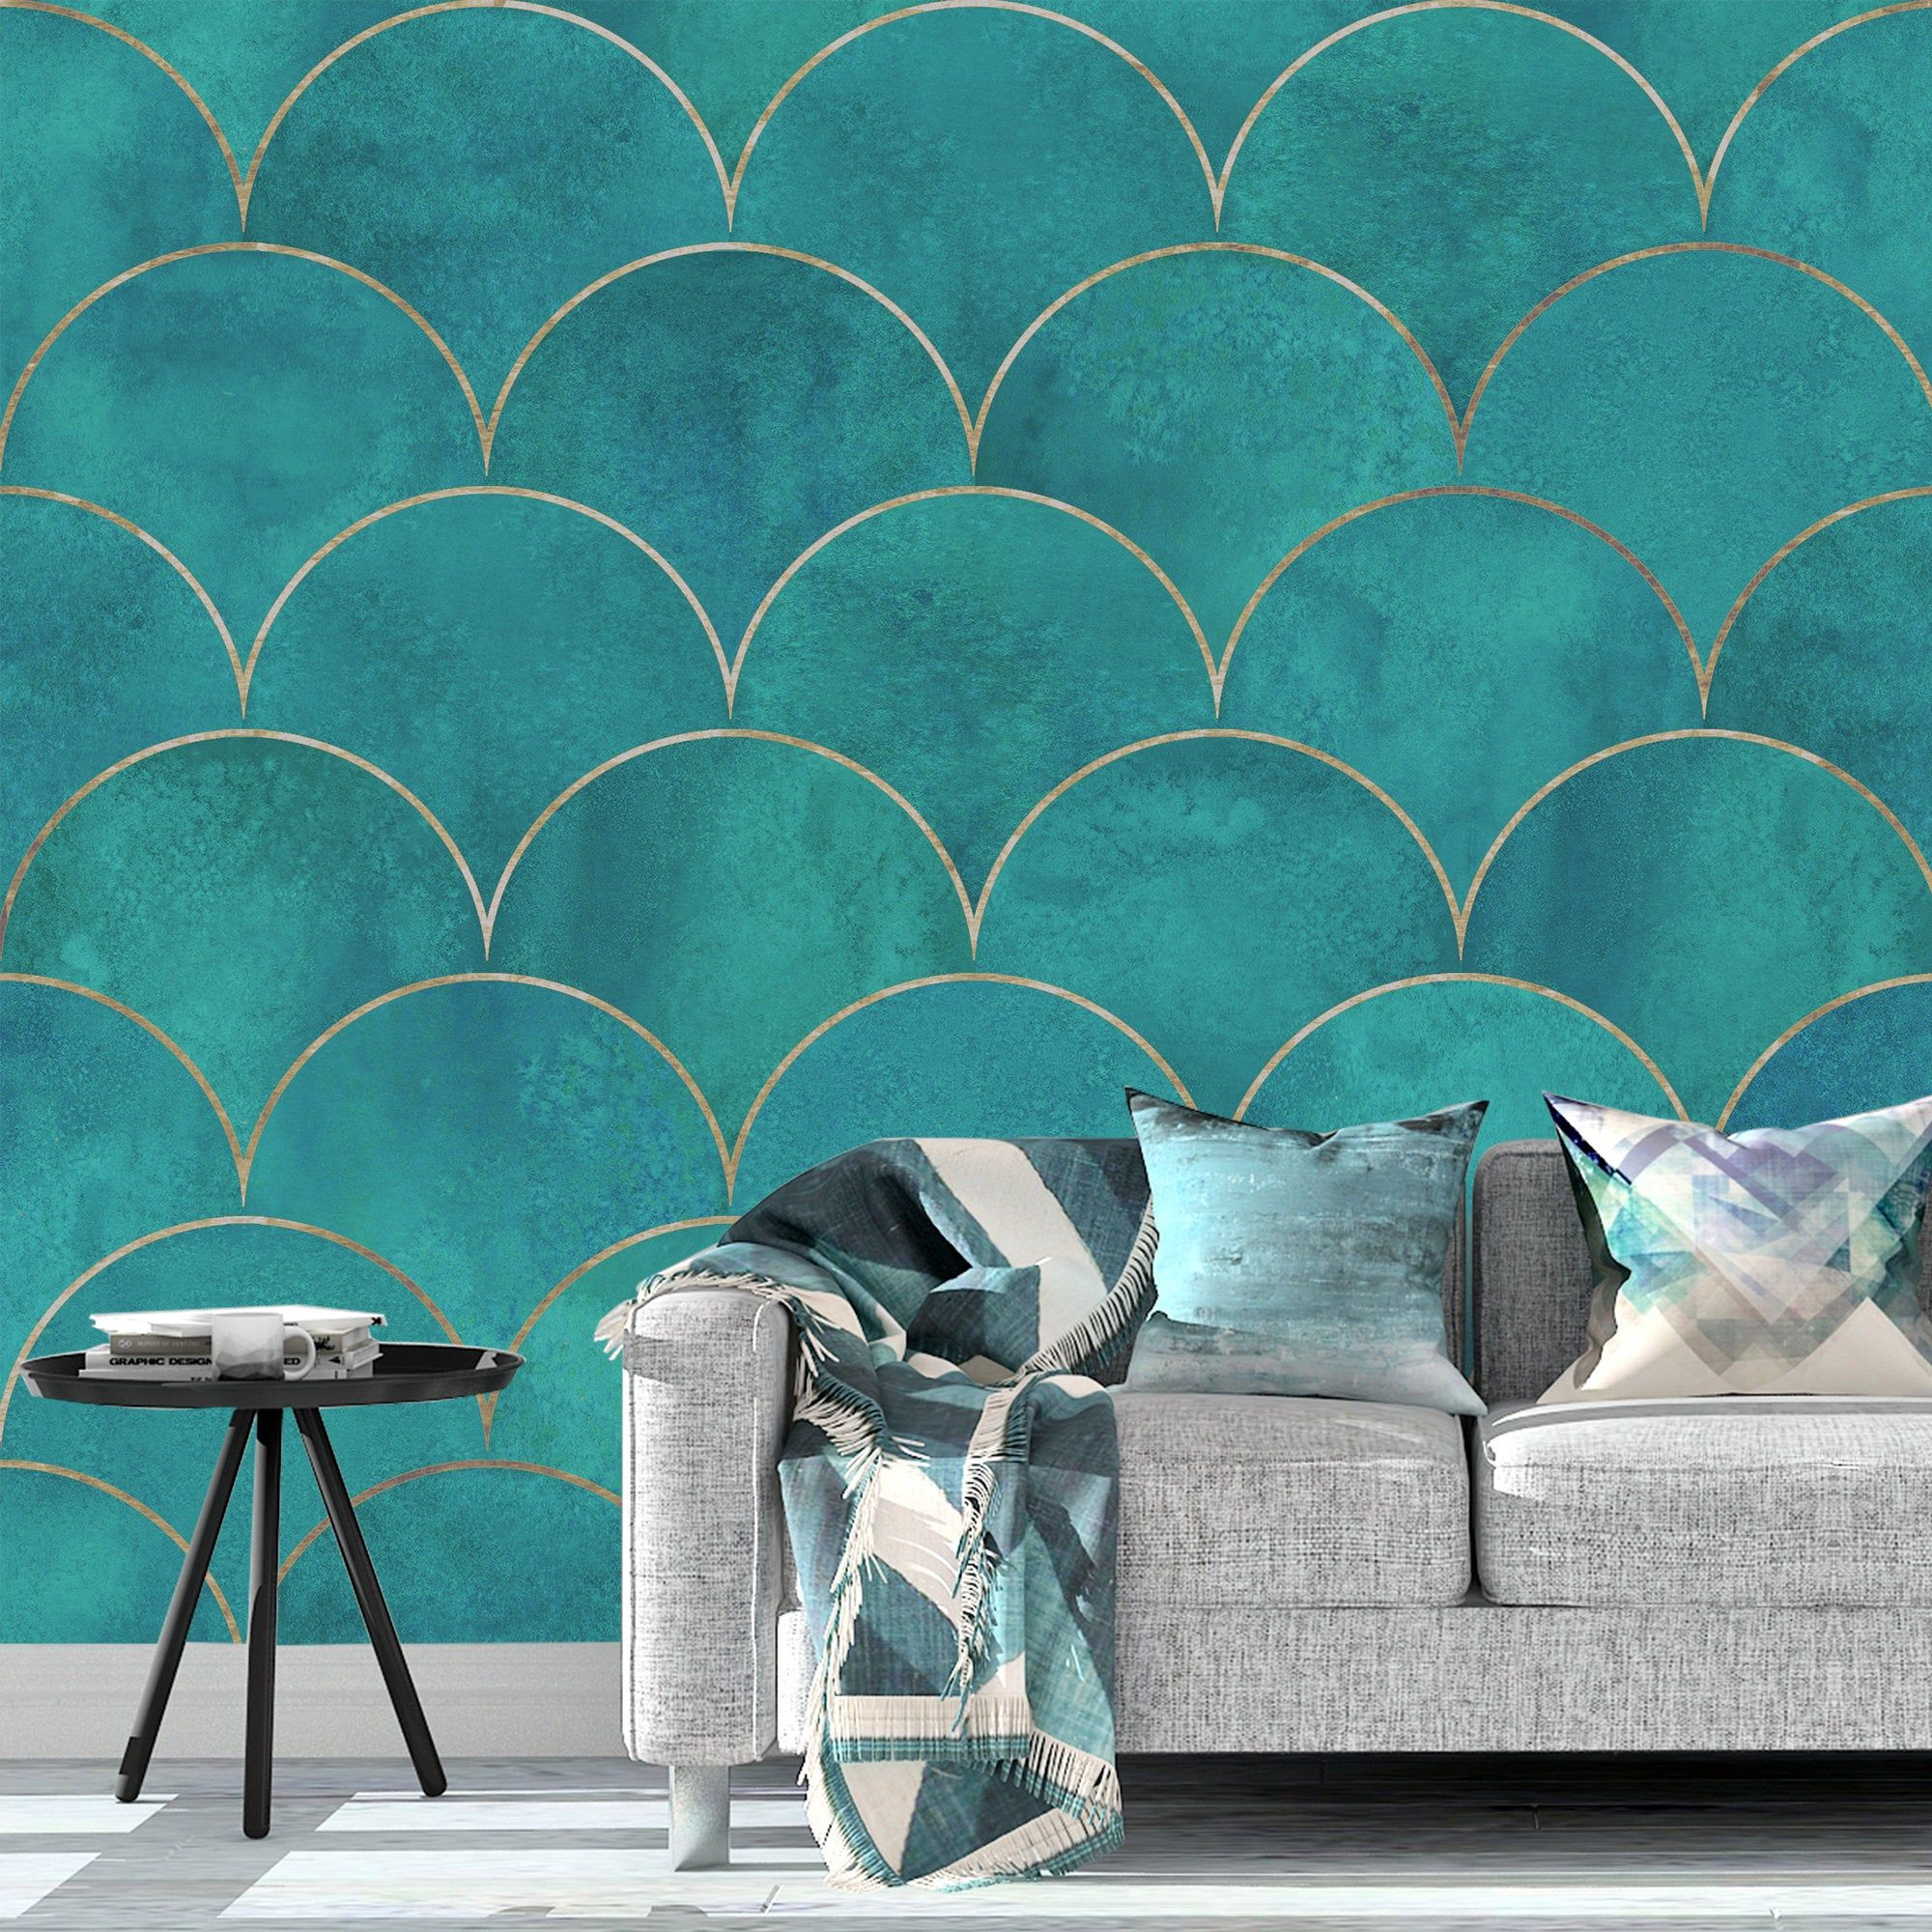 Removable Wallpaper Peel And Stick Wallpaper Home Decor Wall Etsy Wallpaper Walls Decor Wall Wallpaper Removable Wallpaper